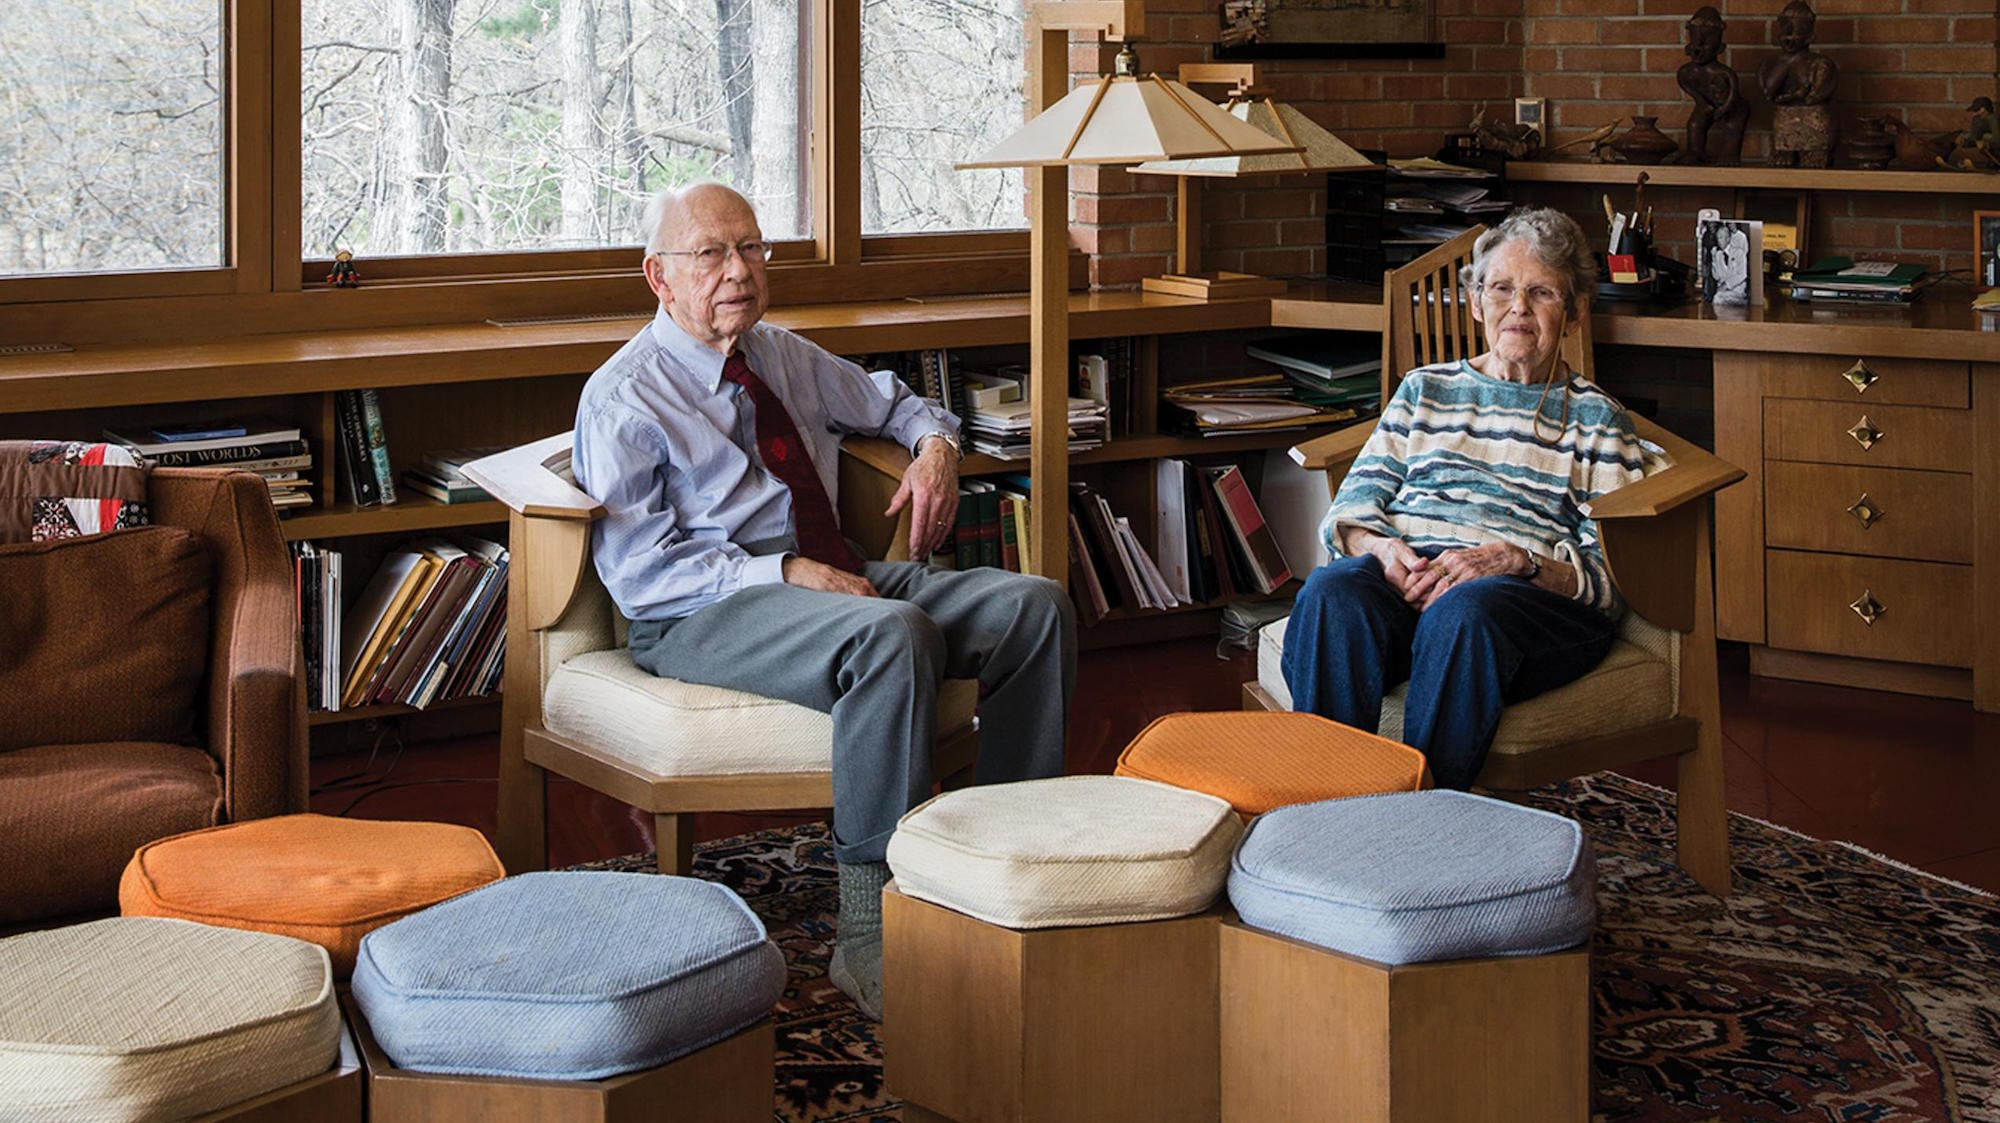 Paul and Helen Olfelt in their Minneapolis home designed by Frank Lloyd Wright